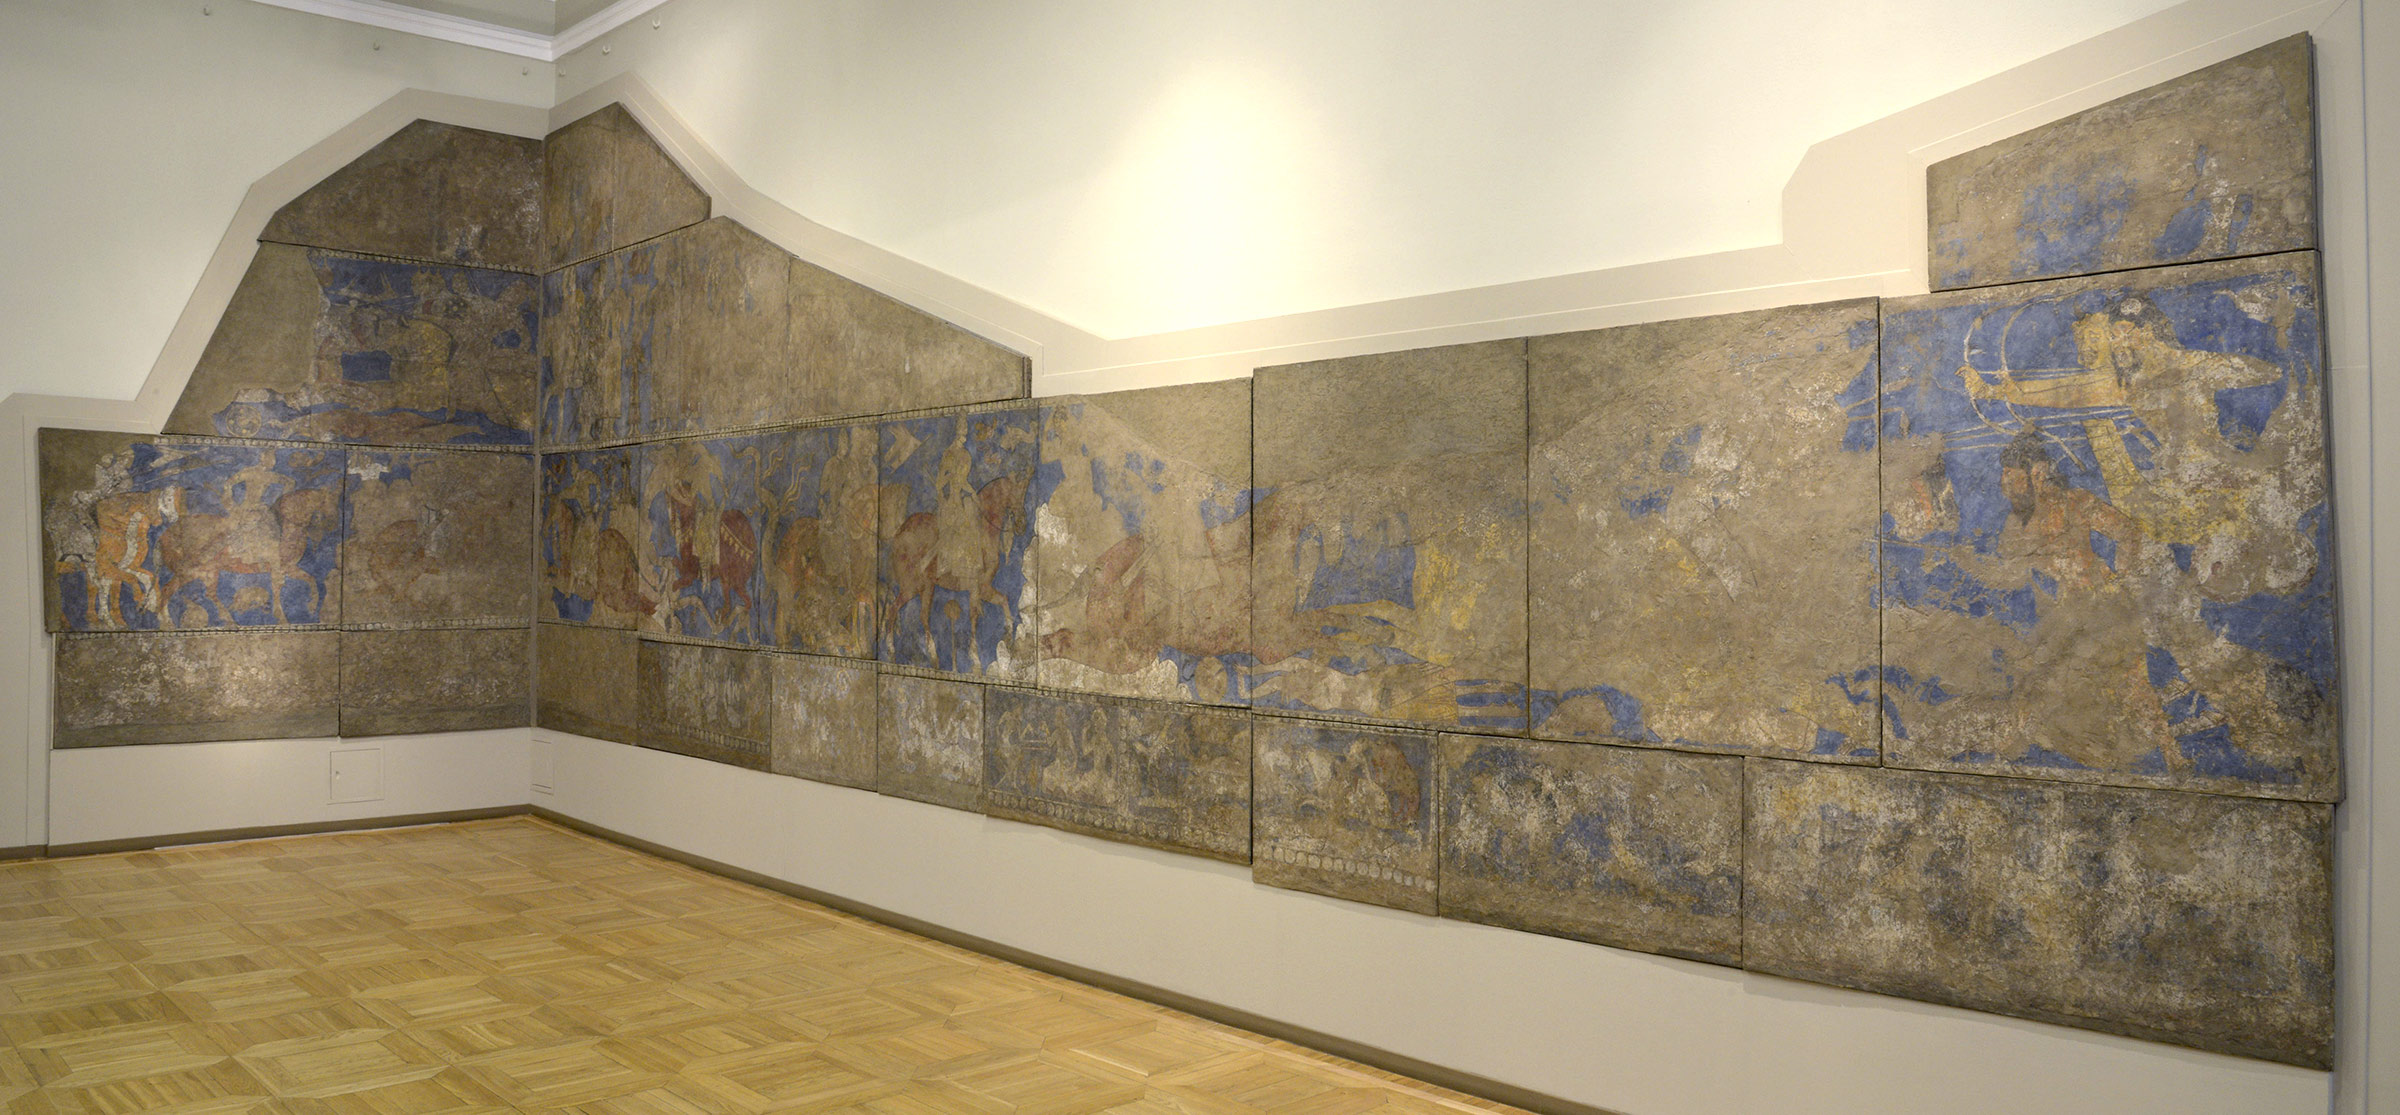 L-shaped wall paintings on display as on display in the Hermitage Museum